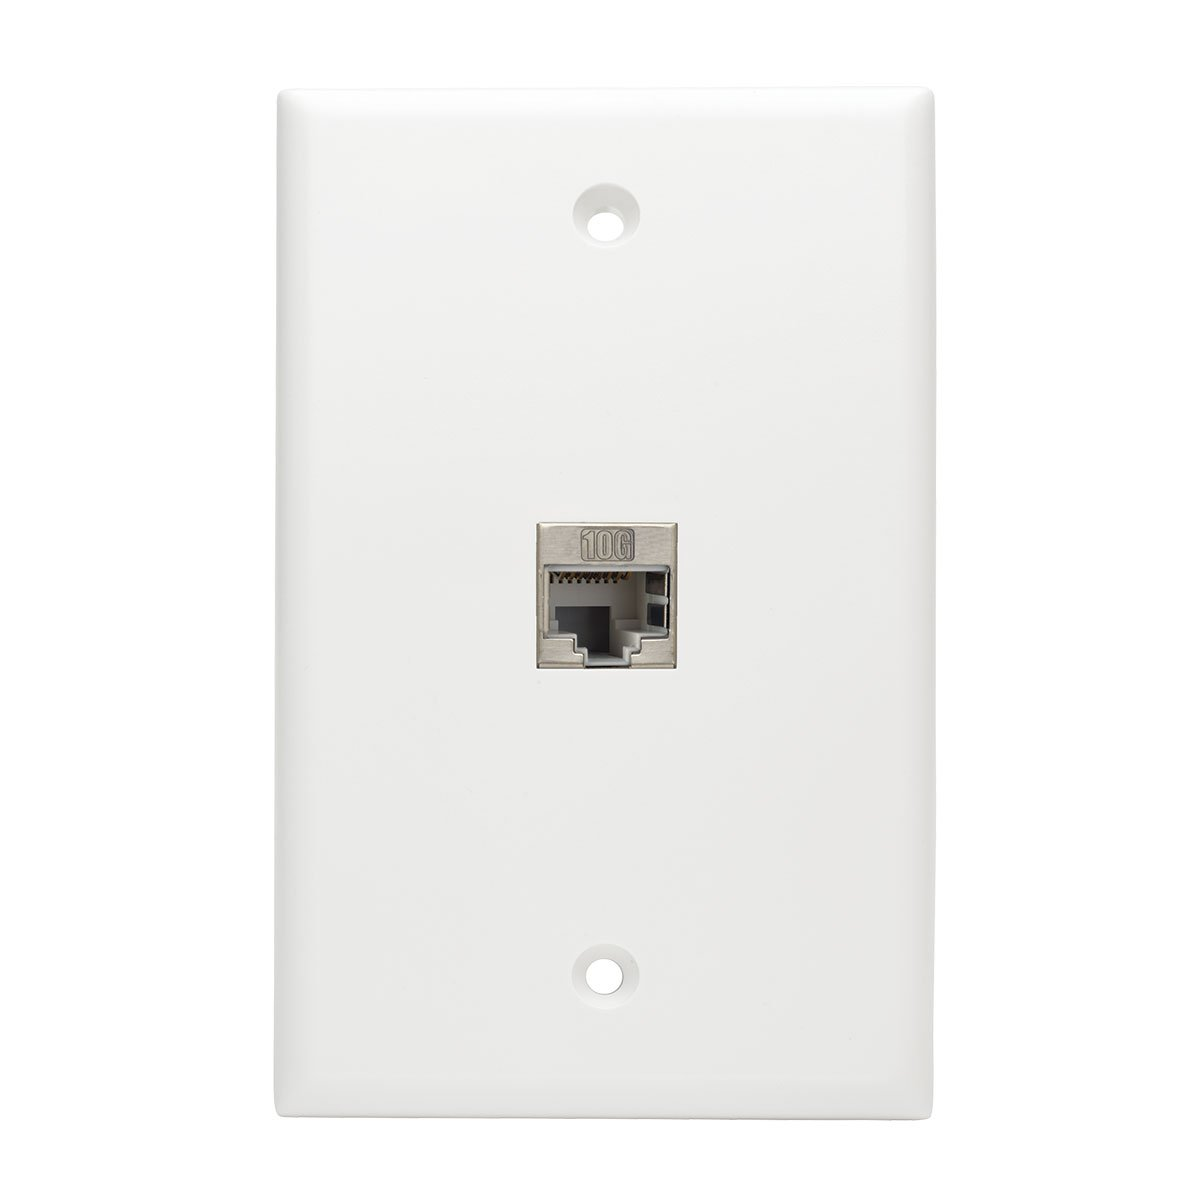 Tripp Lite Cat6a Straight Through Modular Shielded In Gt Enclosures Panels Boards Electrical Boxes Line Snap Coupler W 90 Degree Down Angled Port Rj45 F N235 001 Sh 6ad Computers